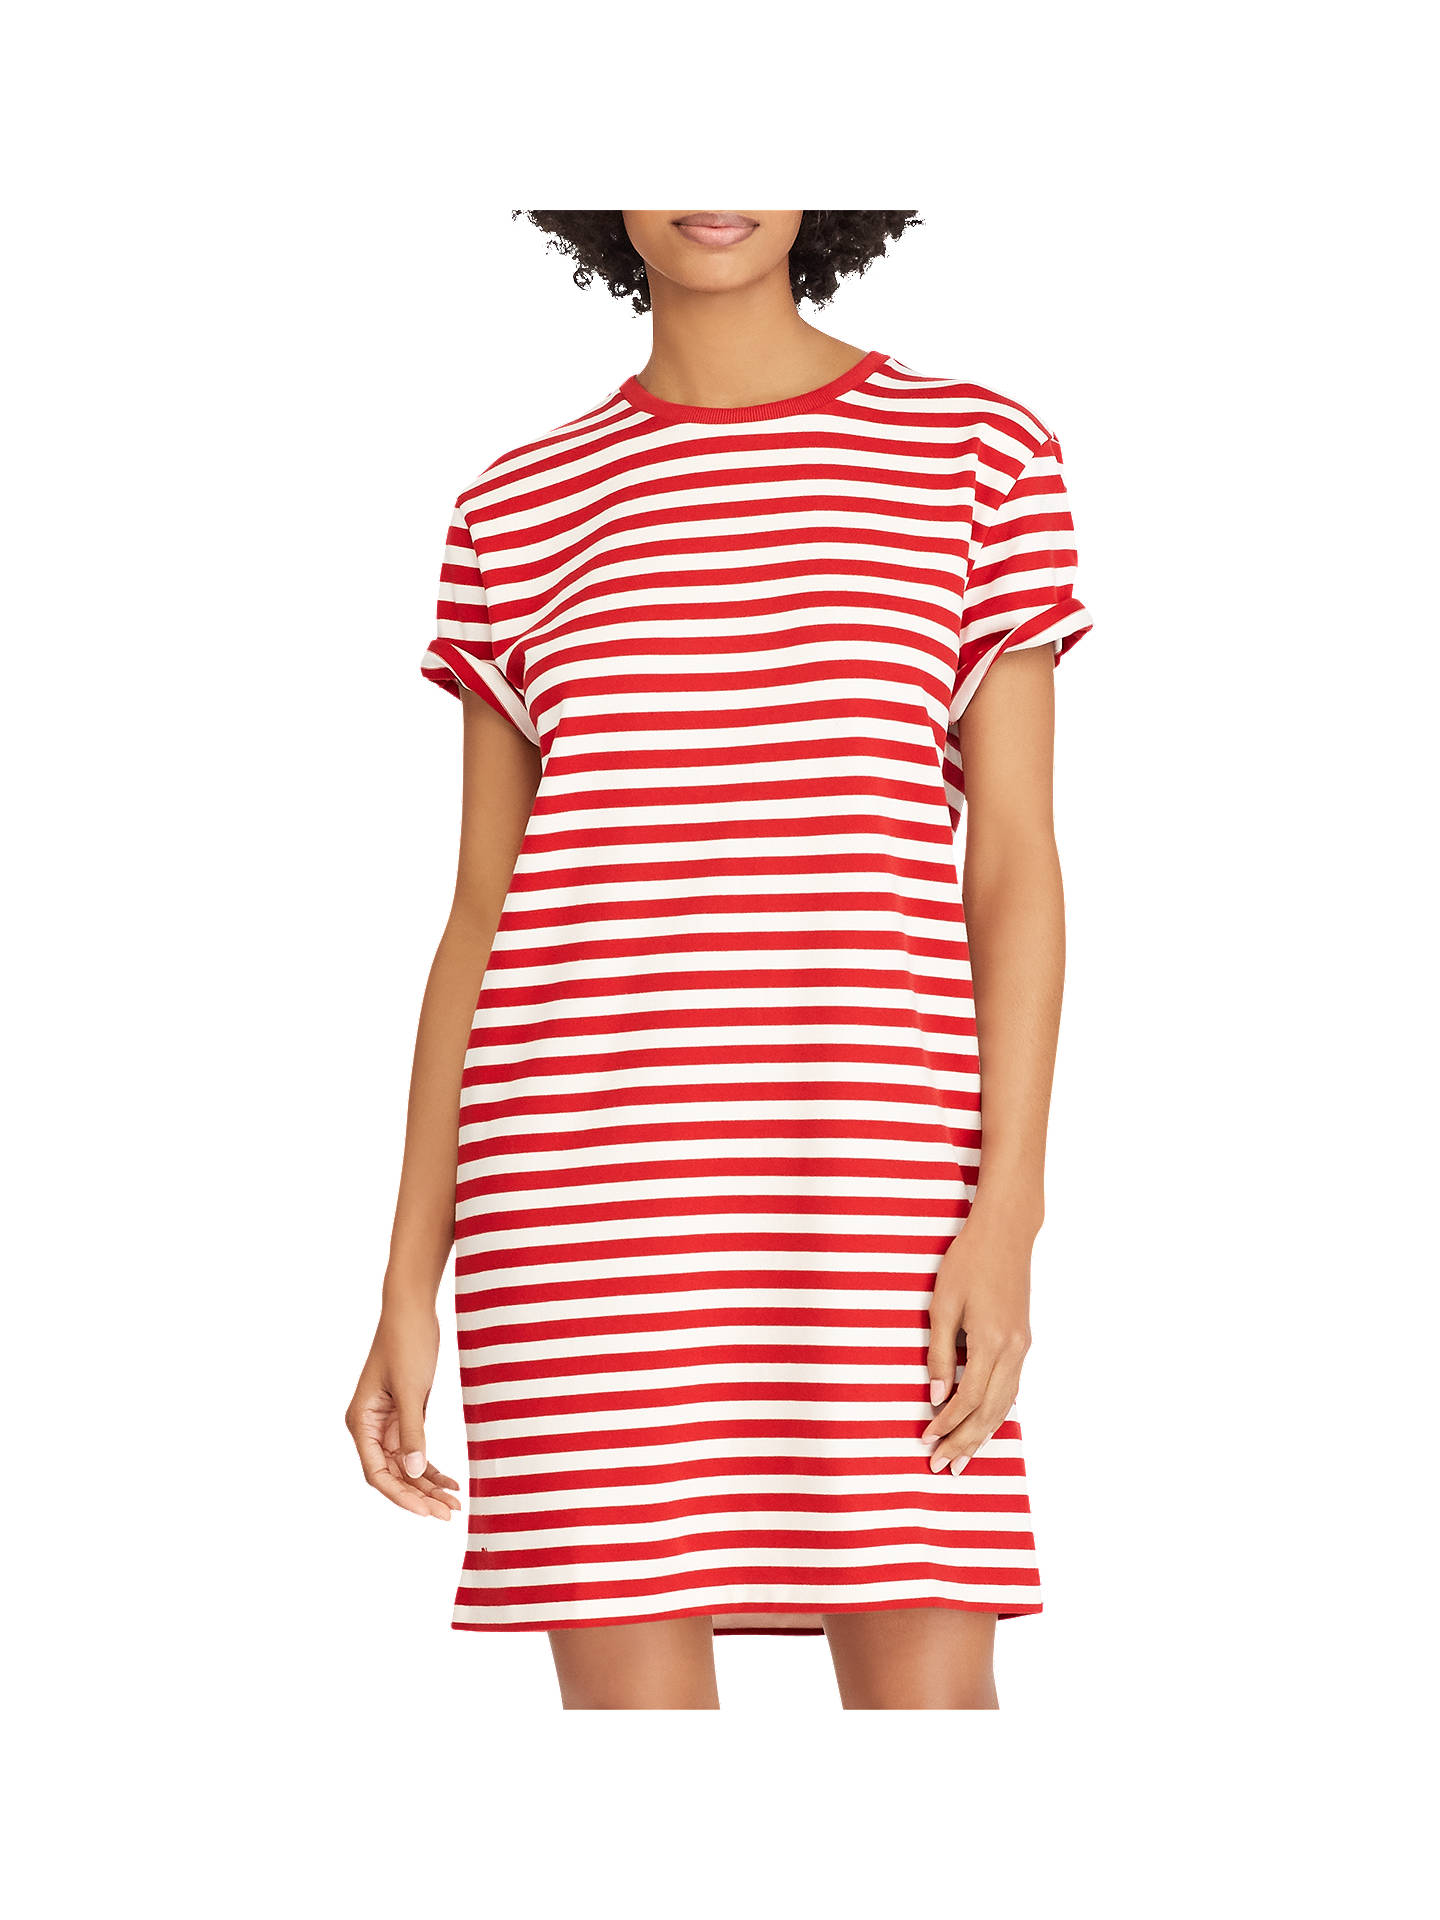 BuyPolo Ralph Lauren Striped T-Shirt Dress, Red/Deckwash, XS Online at johnlewis.com